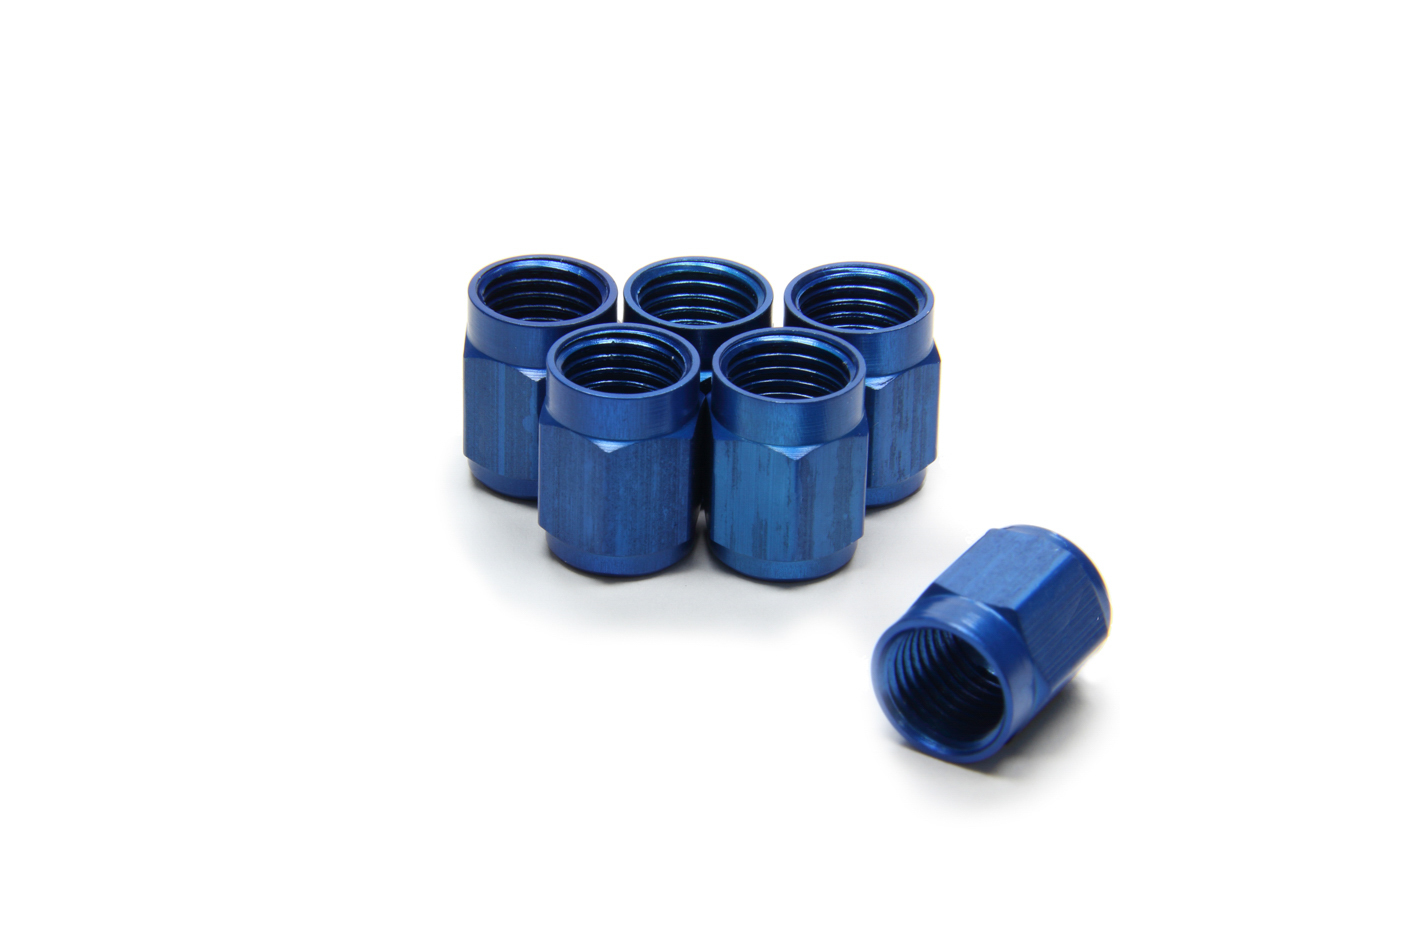 Aeroquip FCM3554 Fitting, Tube Nut, 3 AN, 3/16 in Tube, Aluminum, Blue Anodized, Set of 6